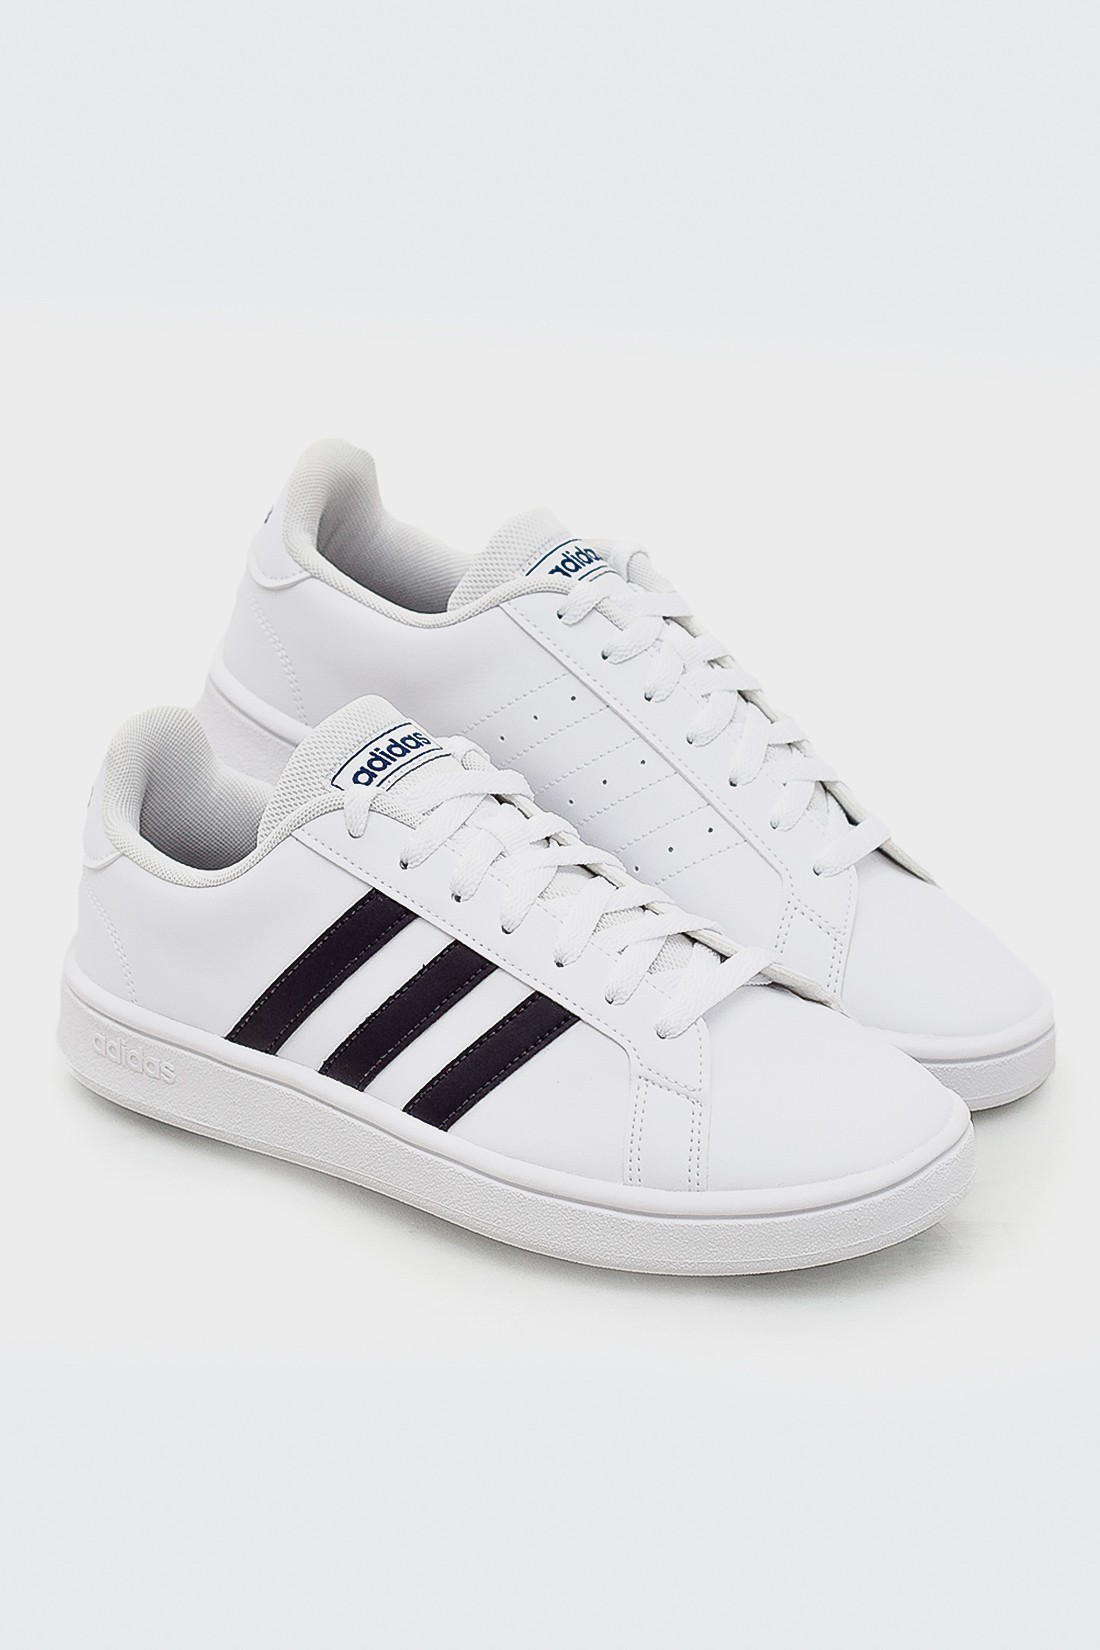 Tenis Casual Adidas Grand Court Base